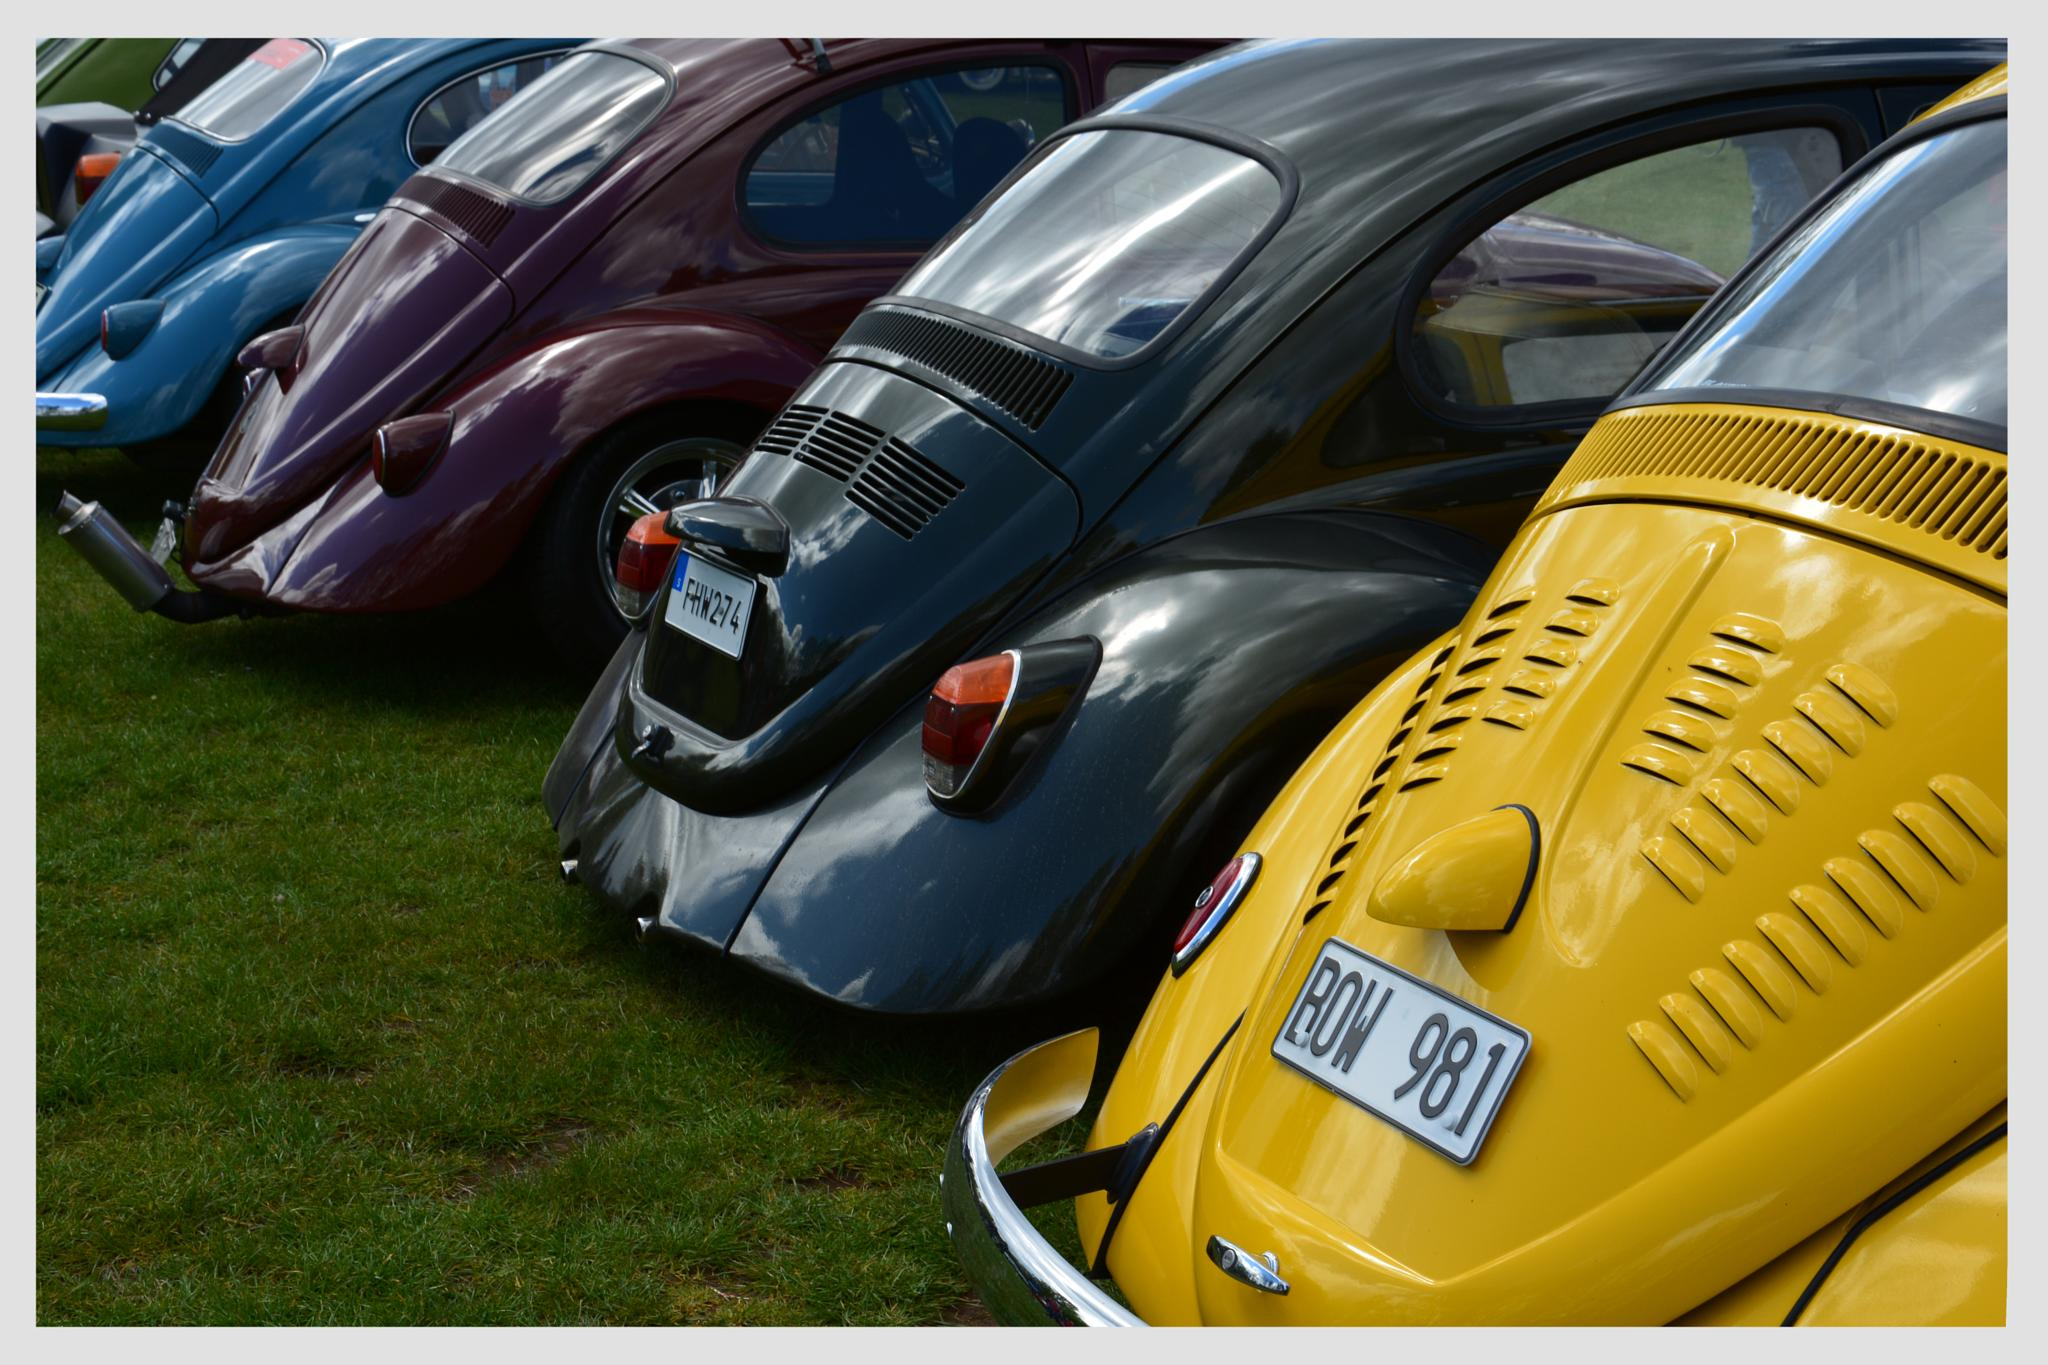 The Beetles have come to town by Linda Persson